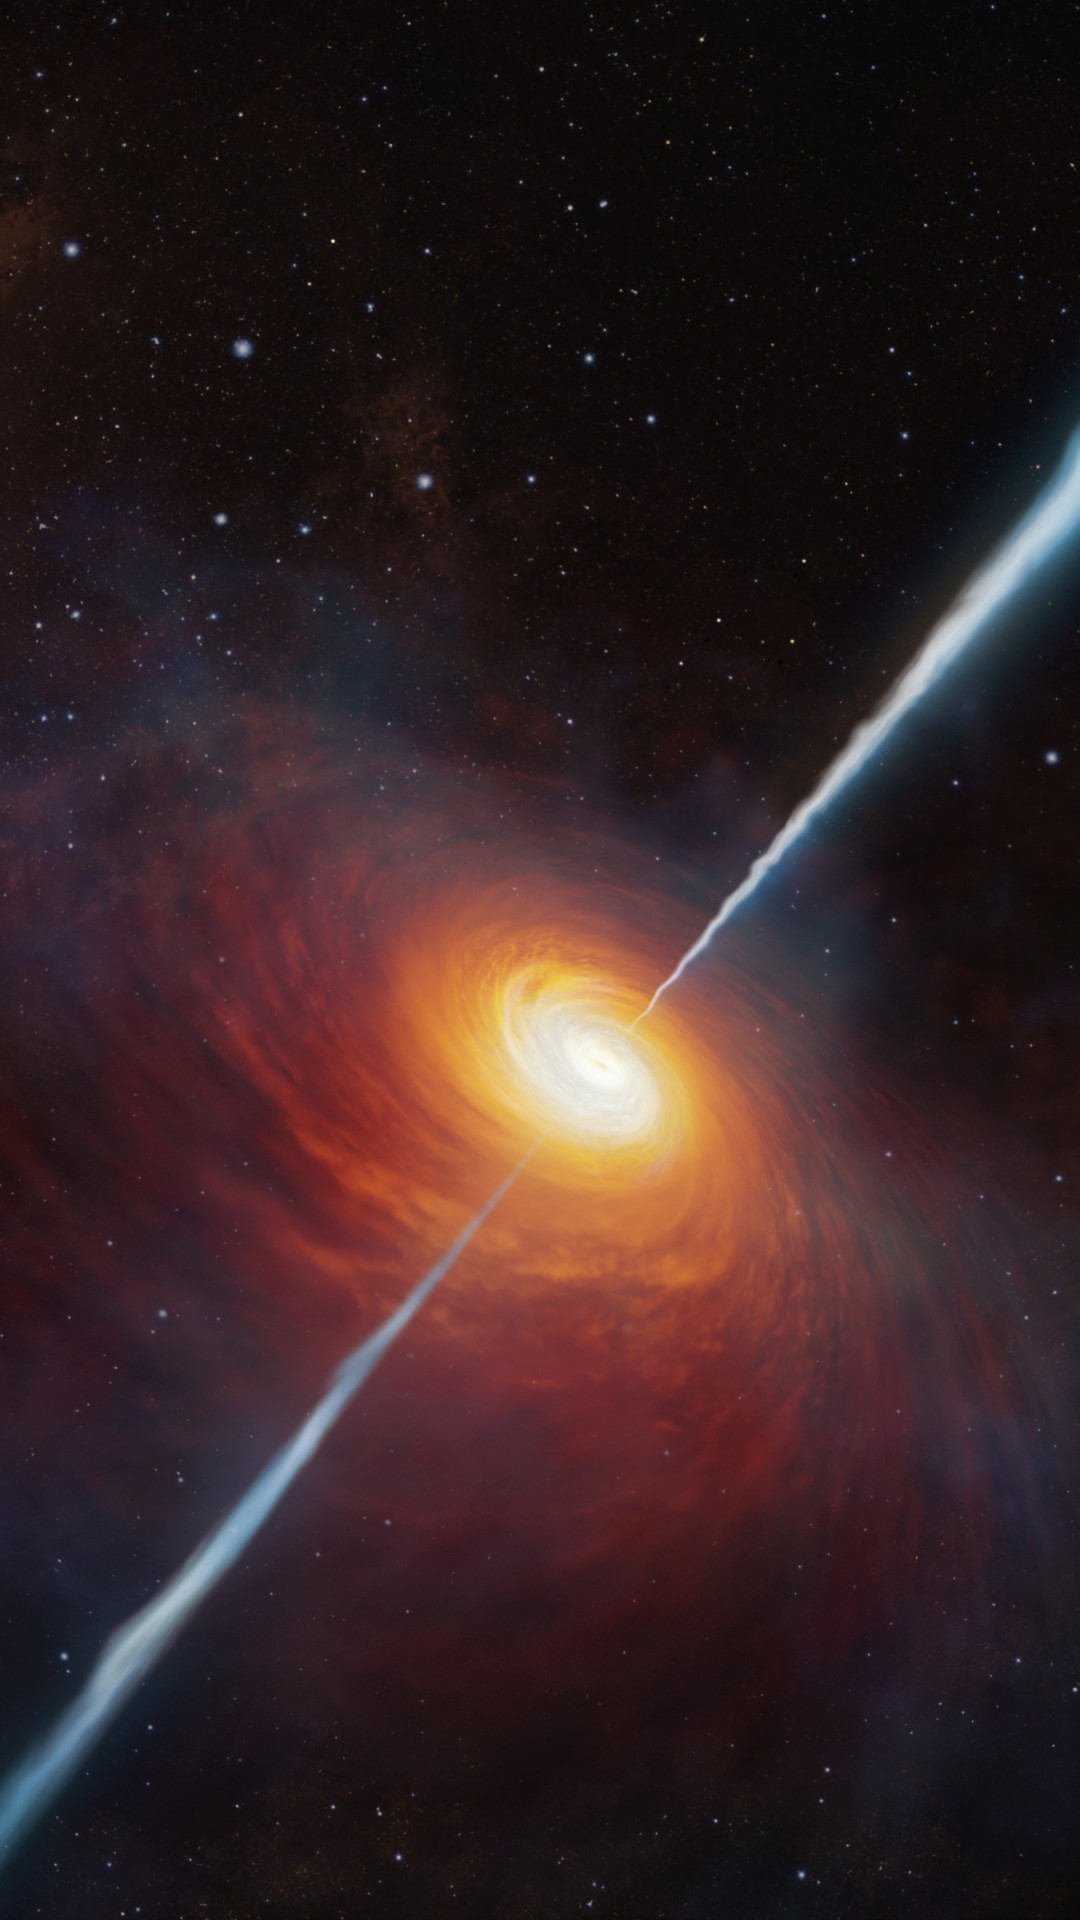 Distant quasar wallpaper 1080x1920